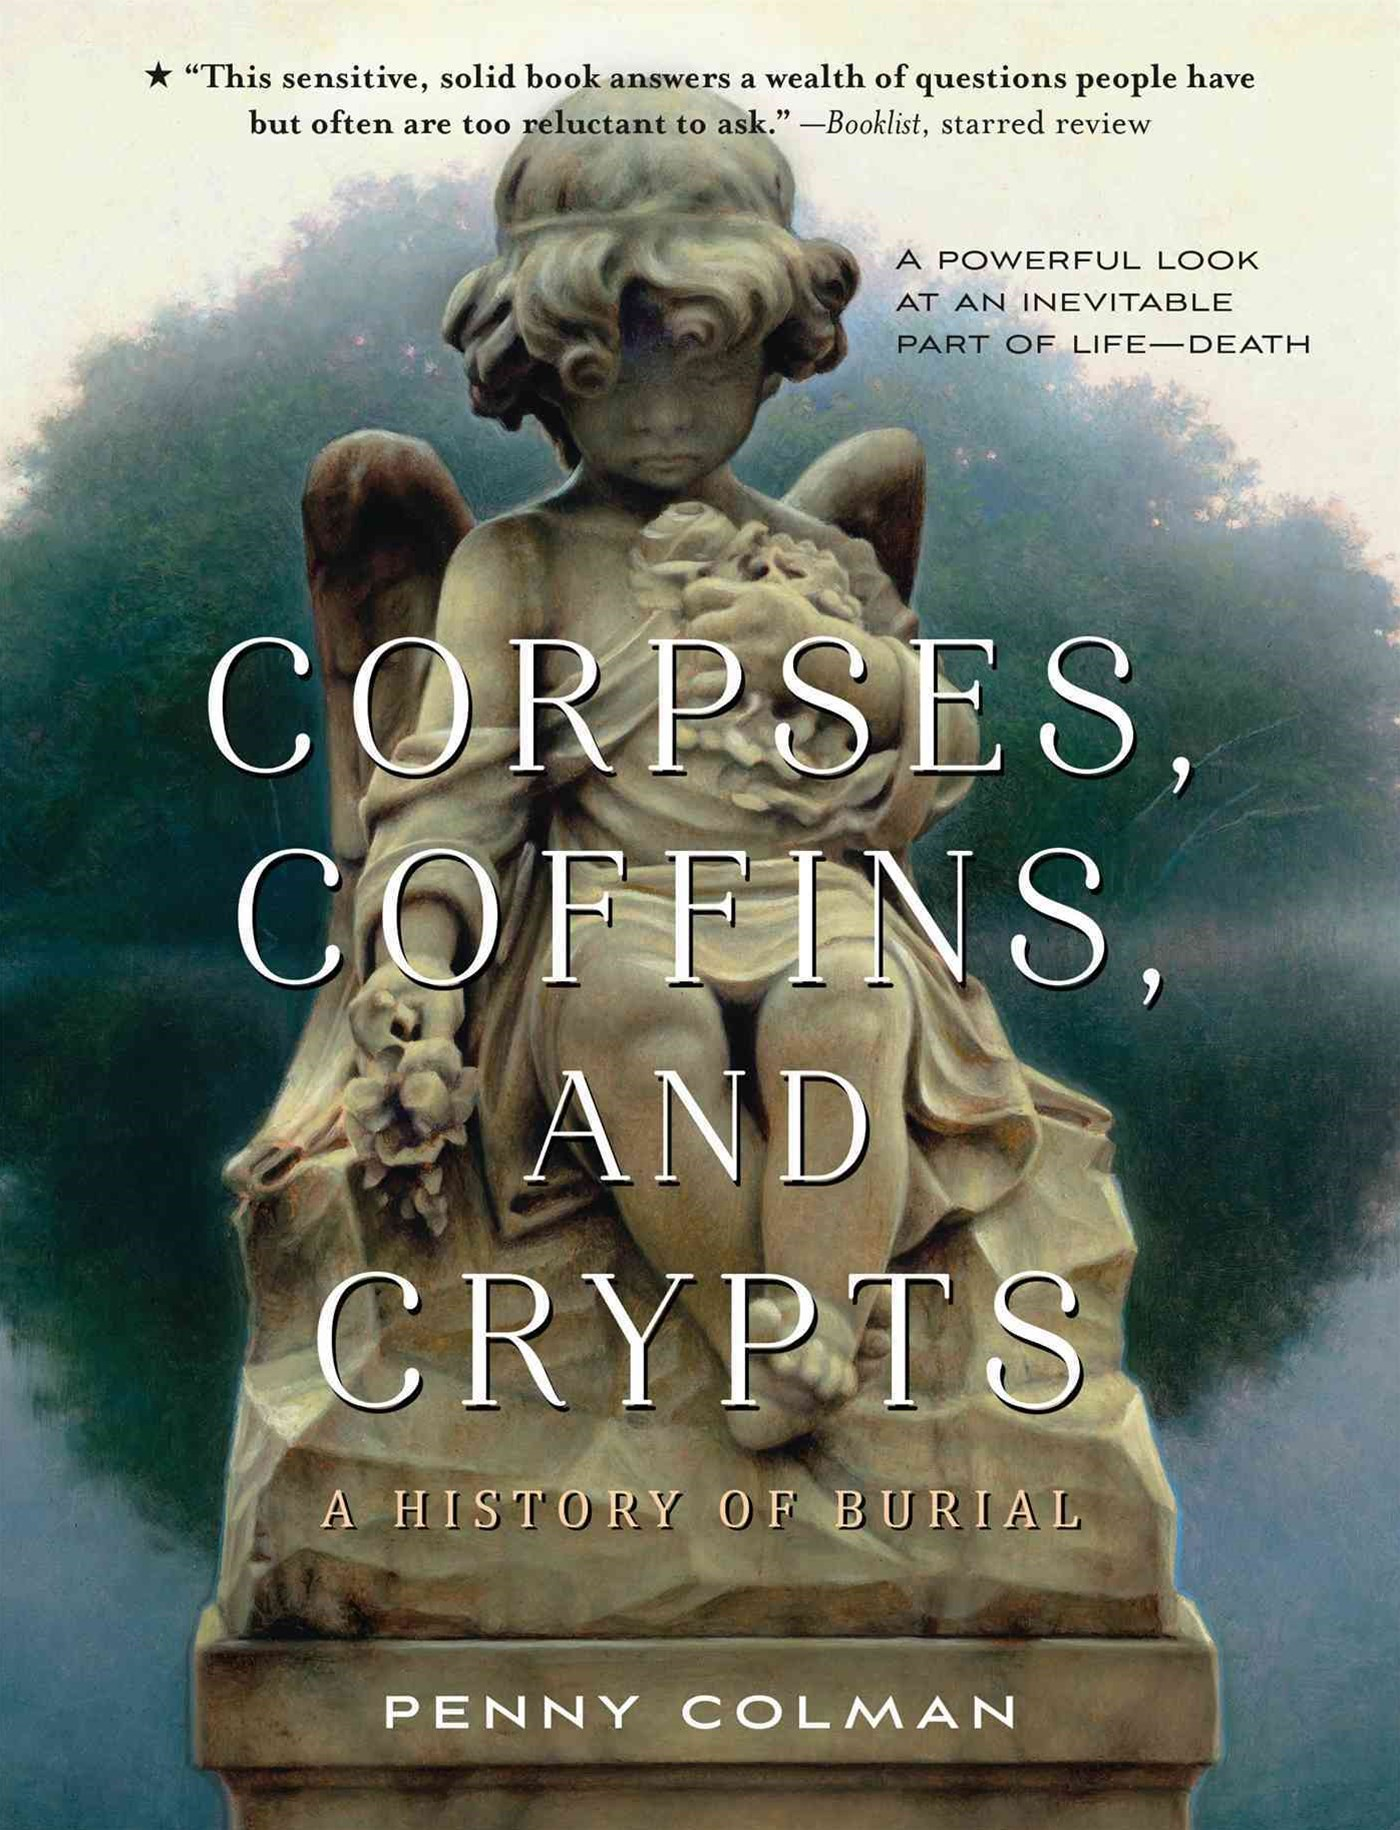 Corpses, Coffins, and Crypts